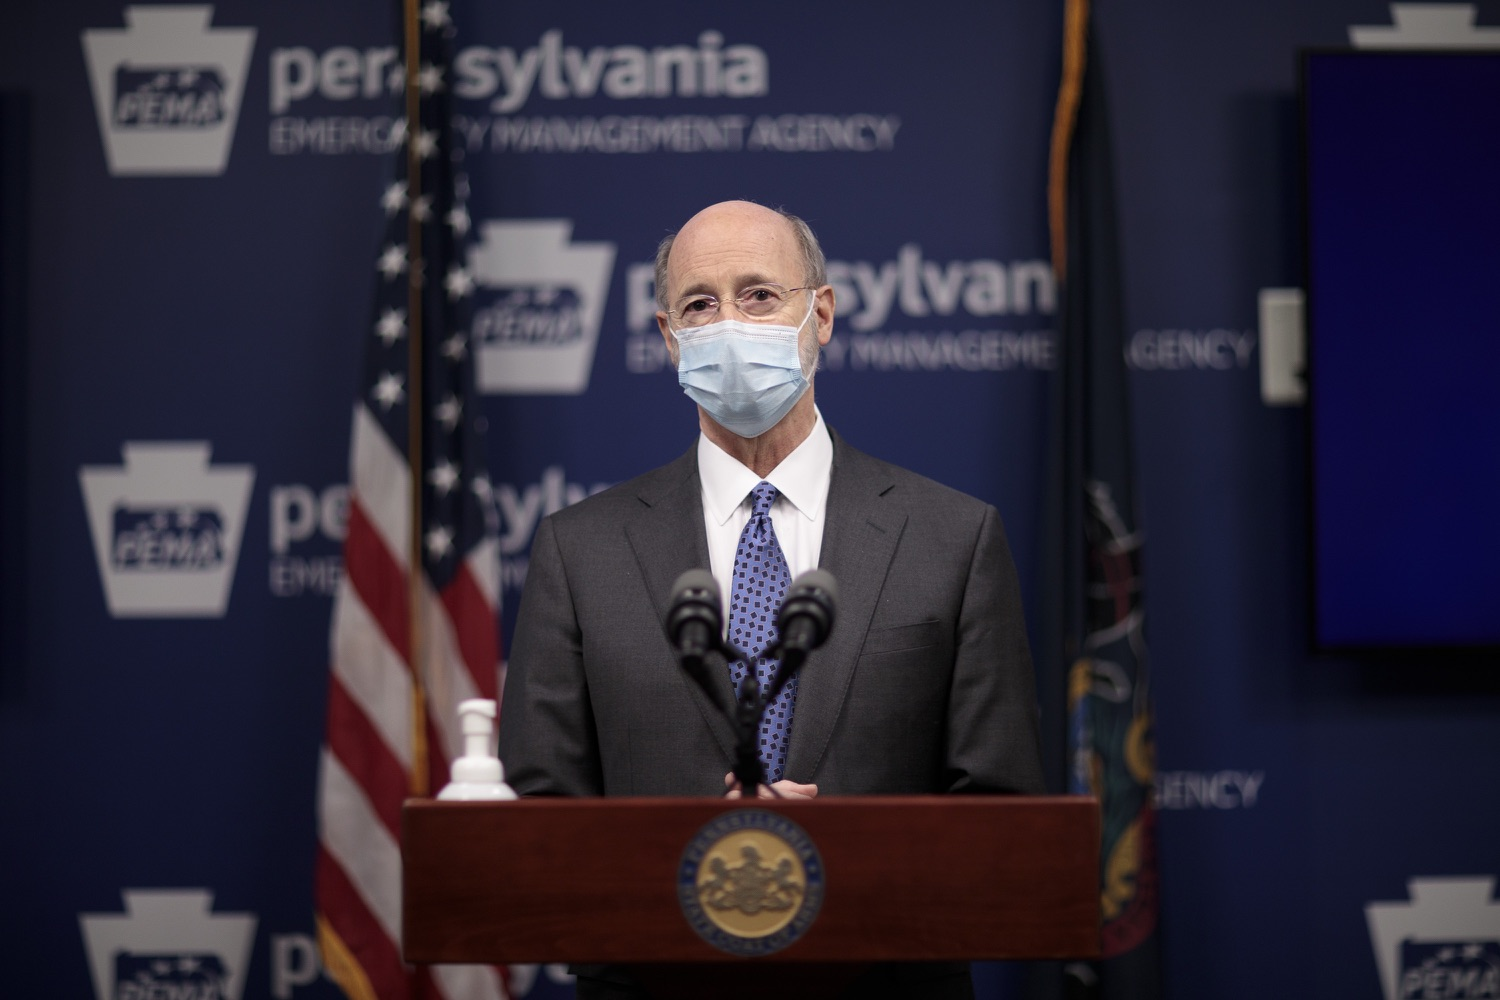 "<a href=""https://filesource.wostreaming.net/commonwealthofpa/photo/18472_gov_vaccine_dz_17.jpg"" target=""_blank"">⇣ Download Photo<br></a>Pennsylvania Governor Tom Wolf speaks at the press conference.  The commonwealths COVID-19 vaccination distribution plan was designed to be fluid and flexible to meet guidance and recommendations from the federal government. Today, Governor Tom Wolf and Secretary of Health Dr. Rachel Levine announced the fourth version of the plan, detailing the updates and how the state is working to ensure safe, swift implementation. Harrisburg, PA  January 8, 2021"